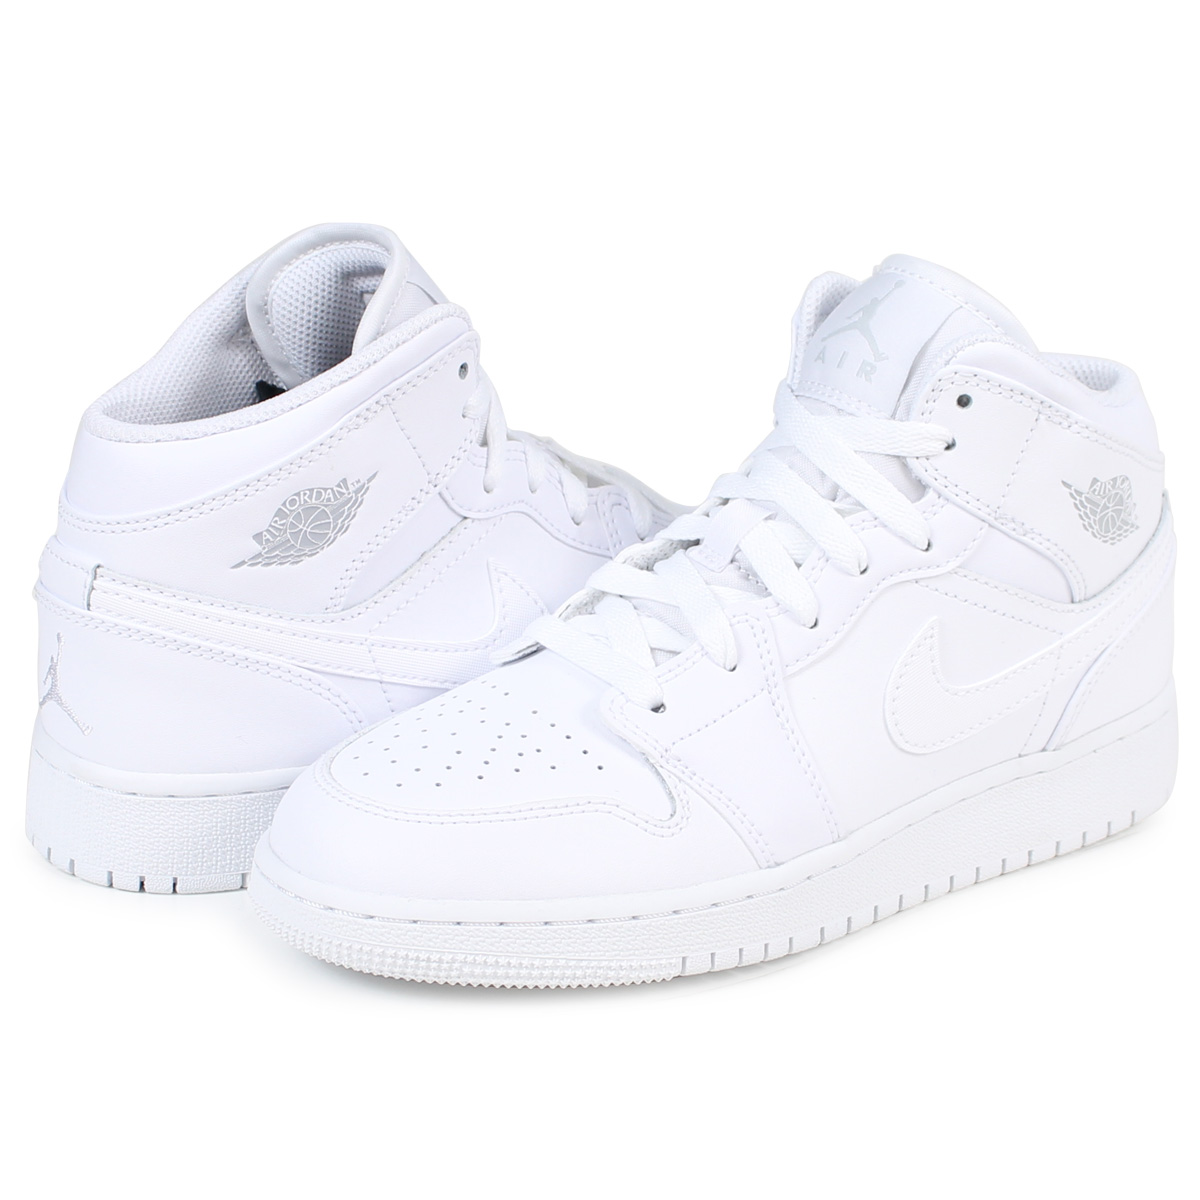 sneakers for cheap 263dd 59fcc Product Information